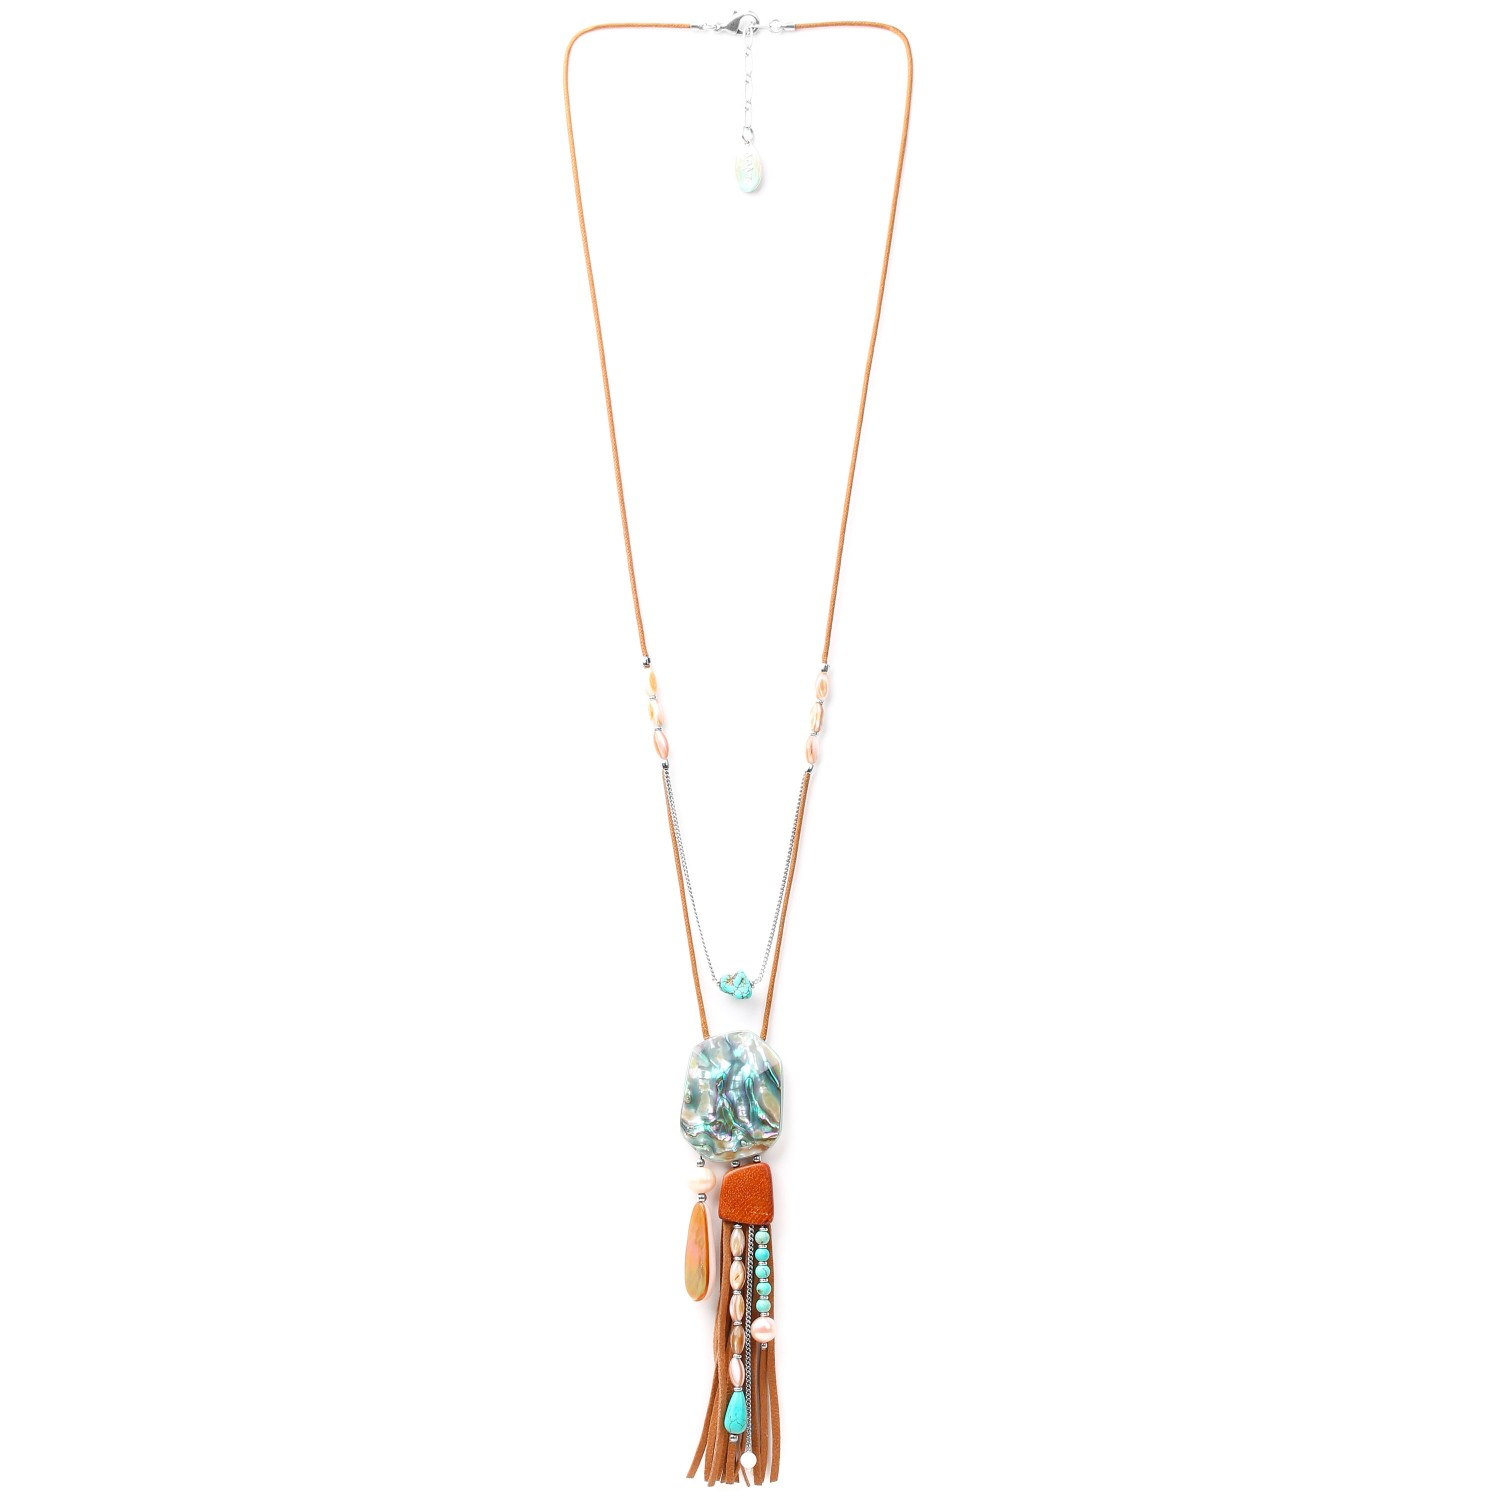 MANGAREVA long necklace